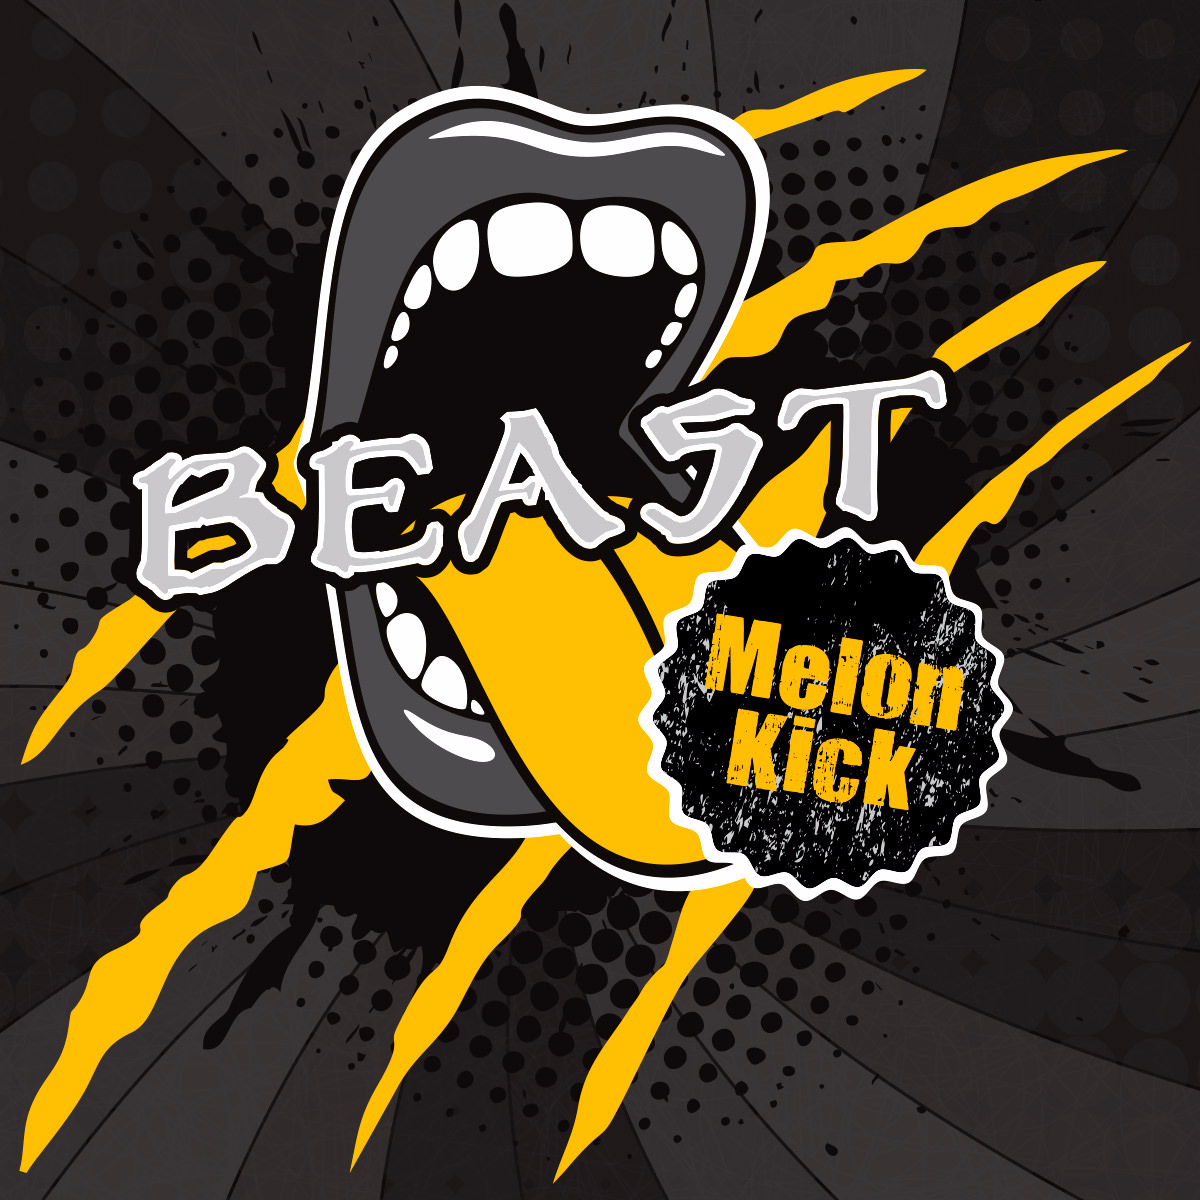 Big Mouth Beast Melon Kick 10ml